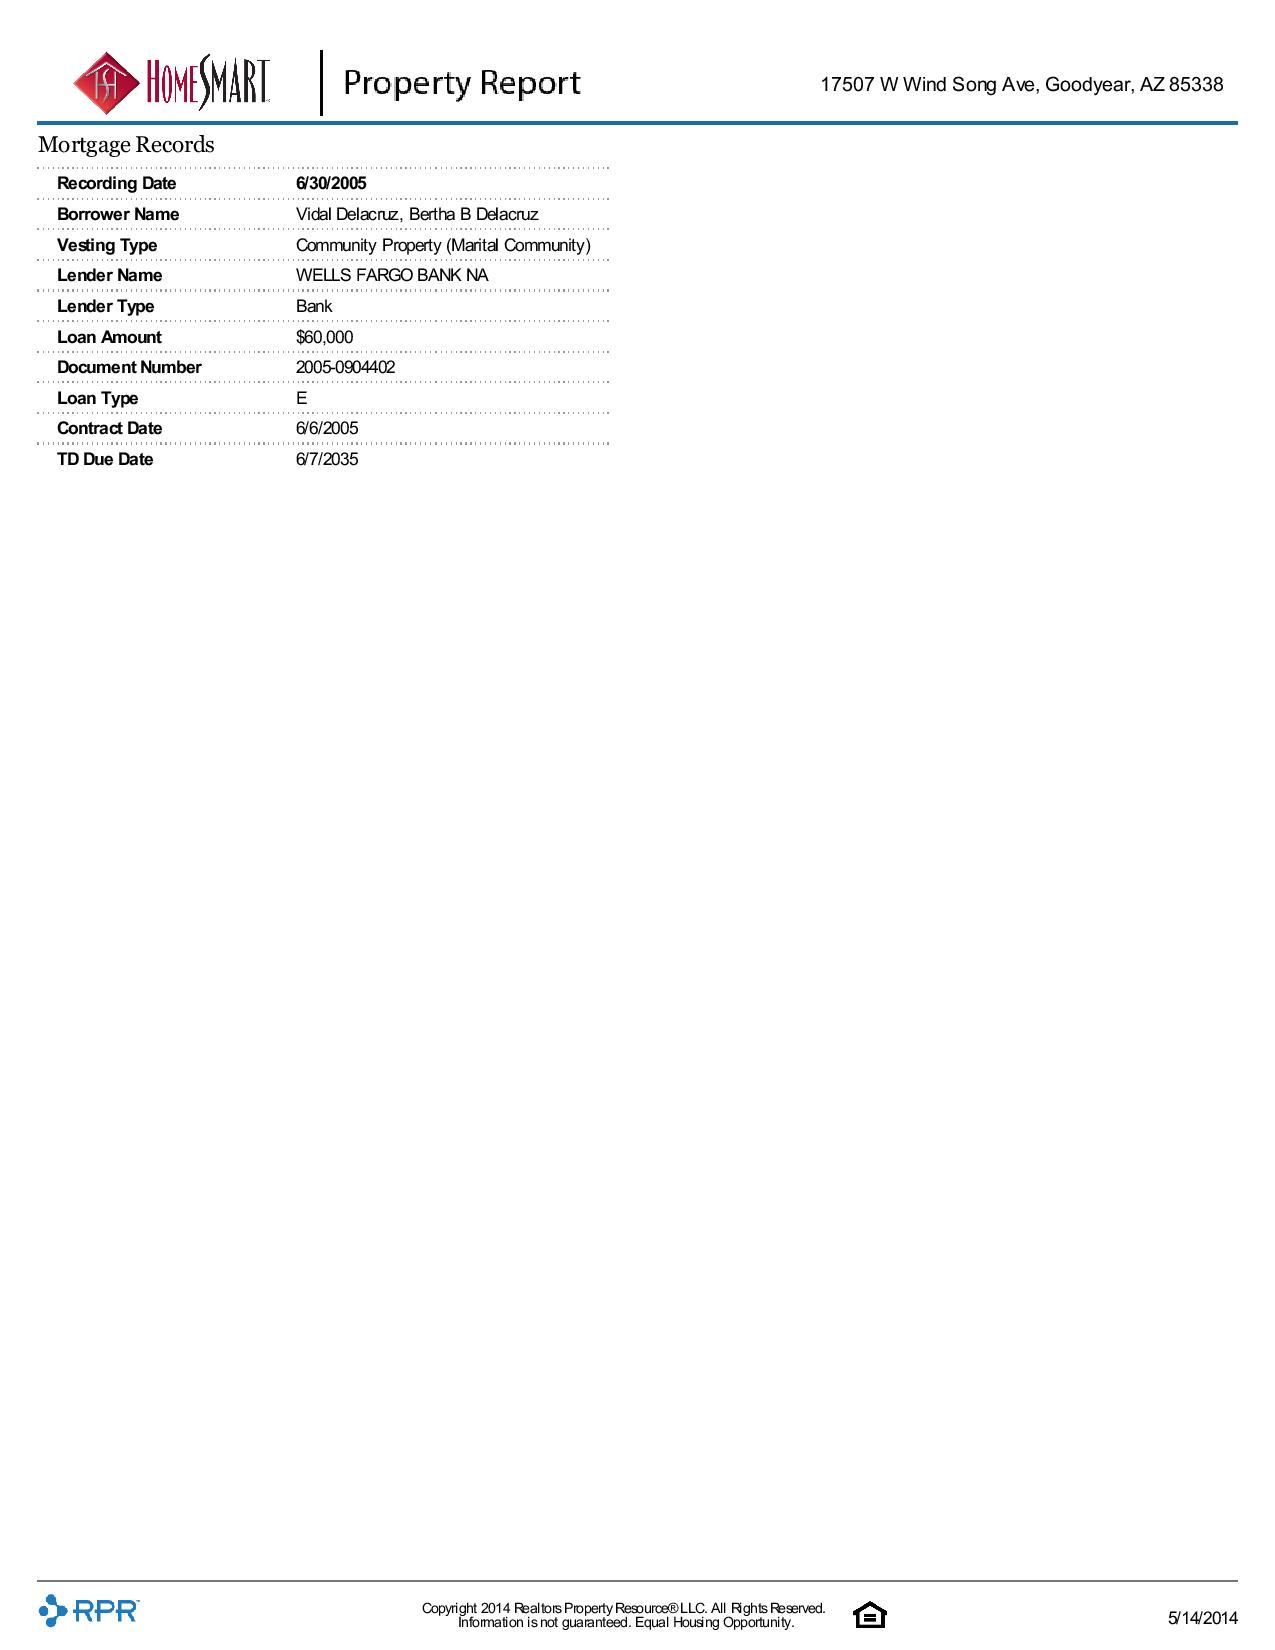 17507-W-Wind-Song-Ave-Goodyear-AZ-85338-page-006